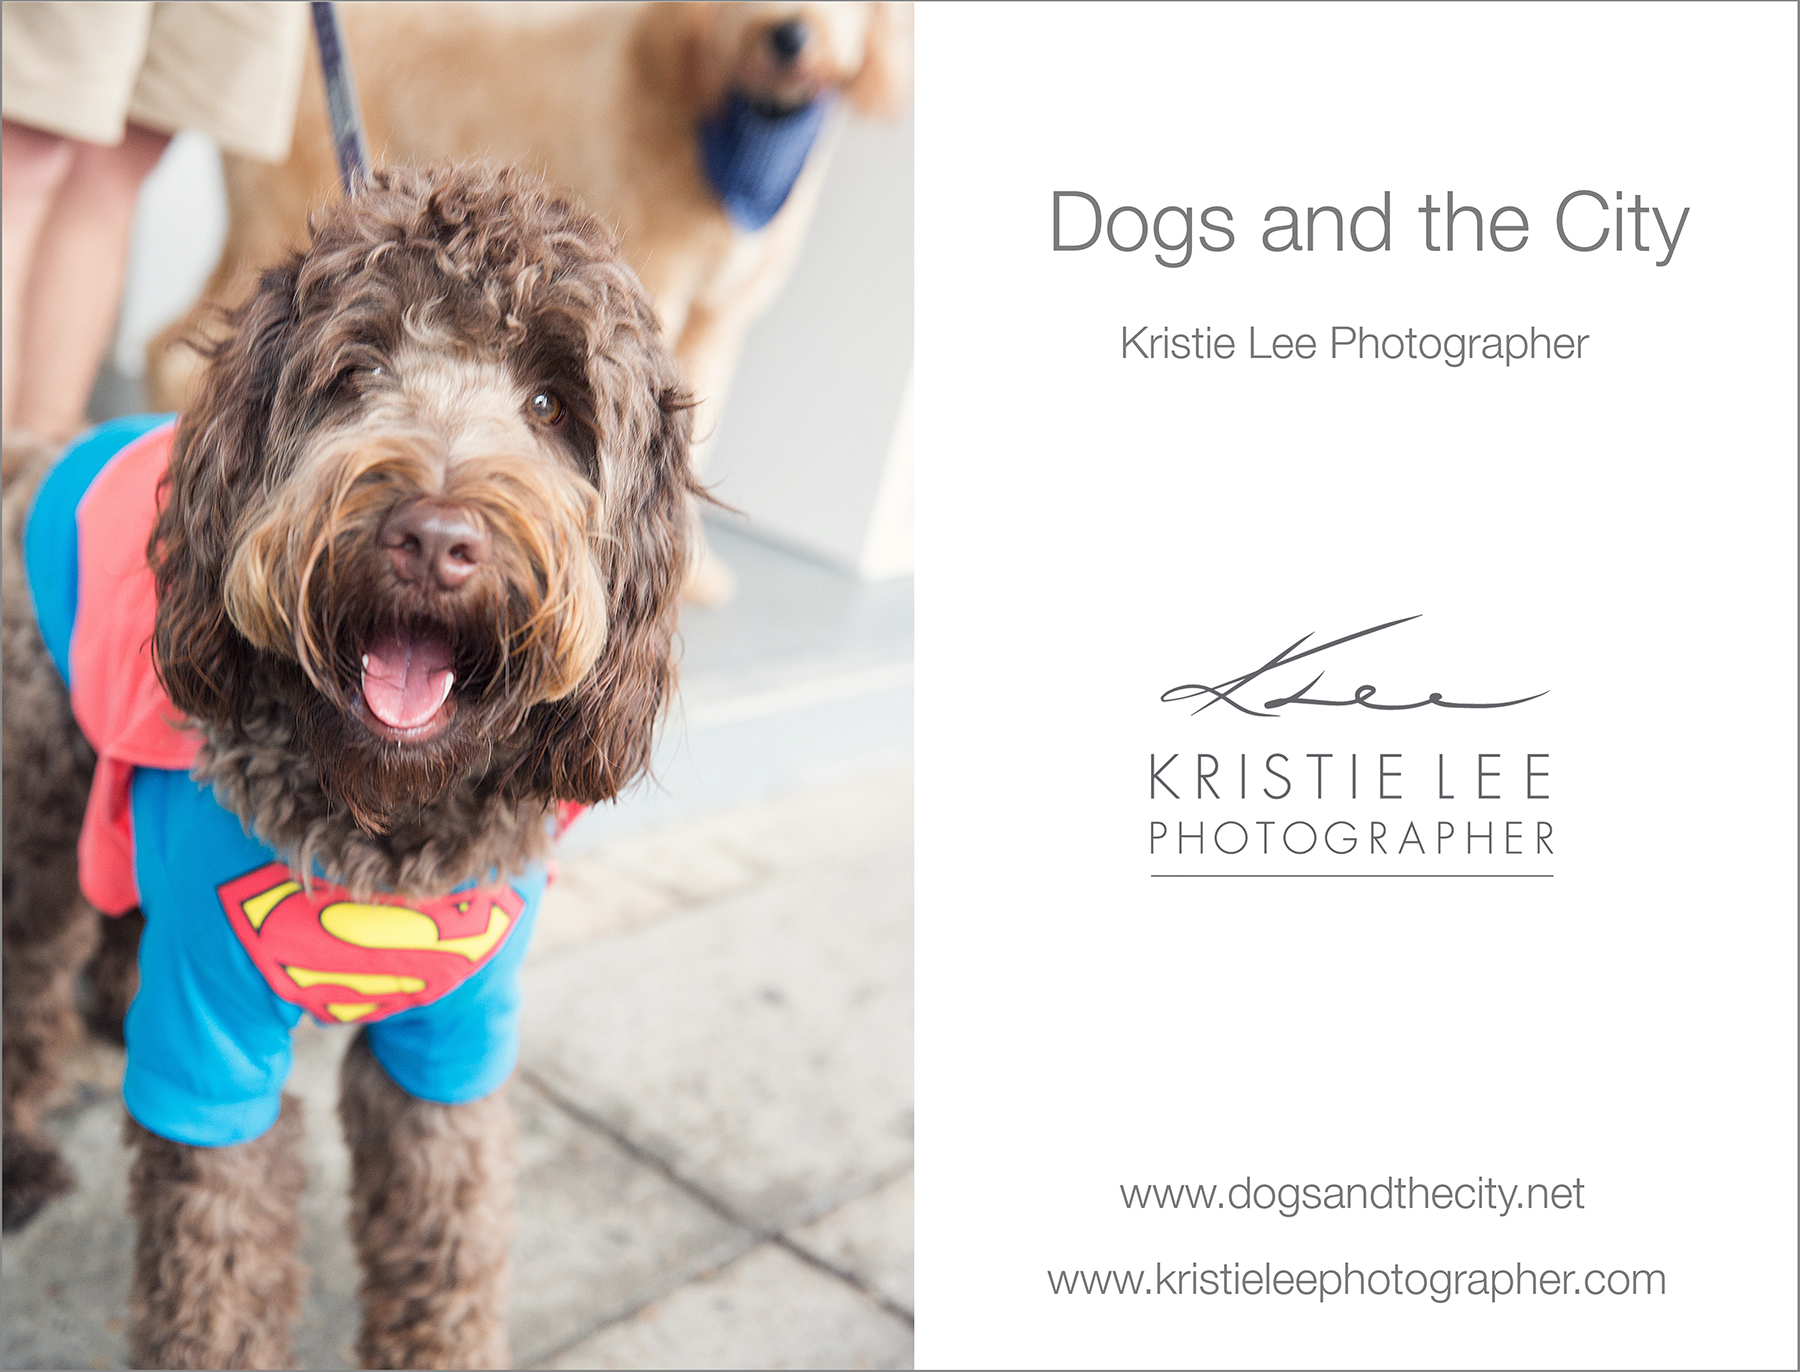 dogs_and_the_city kristie_lee_photographer dogue